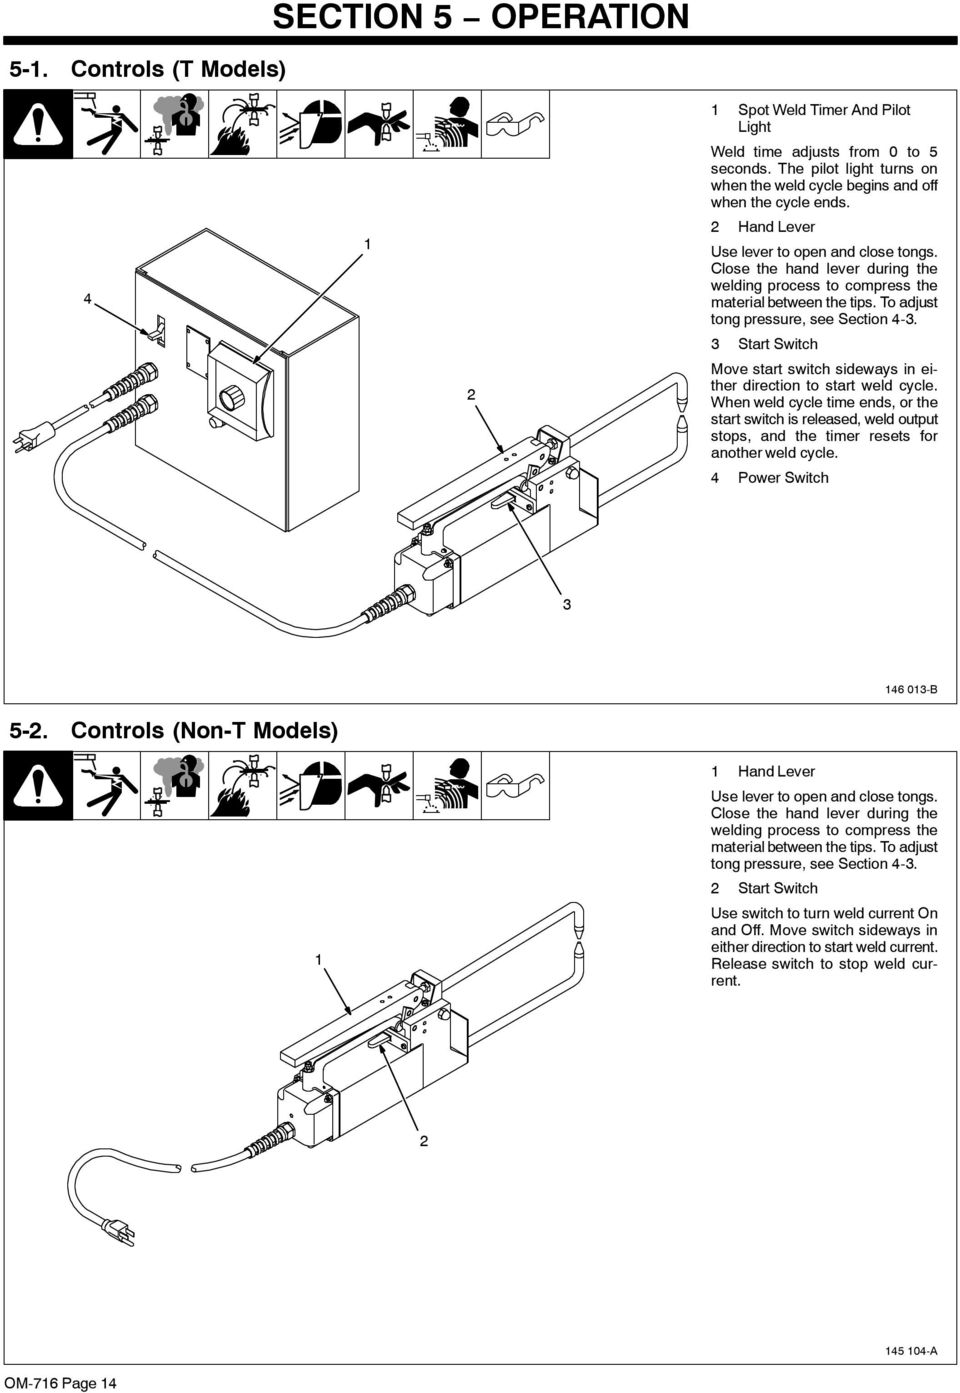 Msw 41 41t Lmsw 52 And 52t Portable Resistance Diagram Of Welding Process 3 Start Switch Move Sideways In Either Direction To Weld Cycle